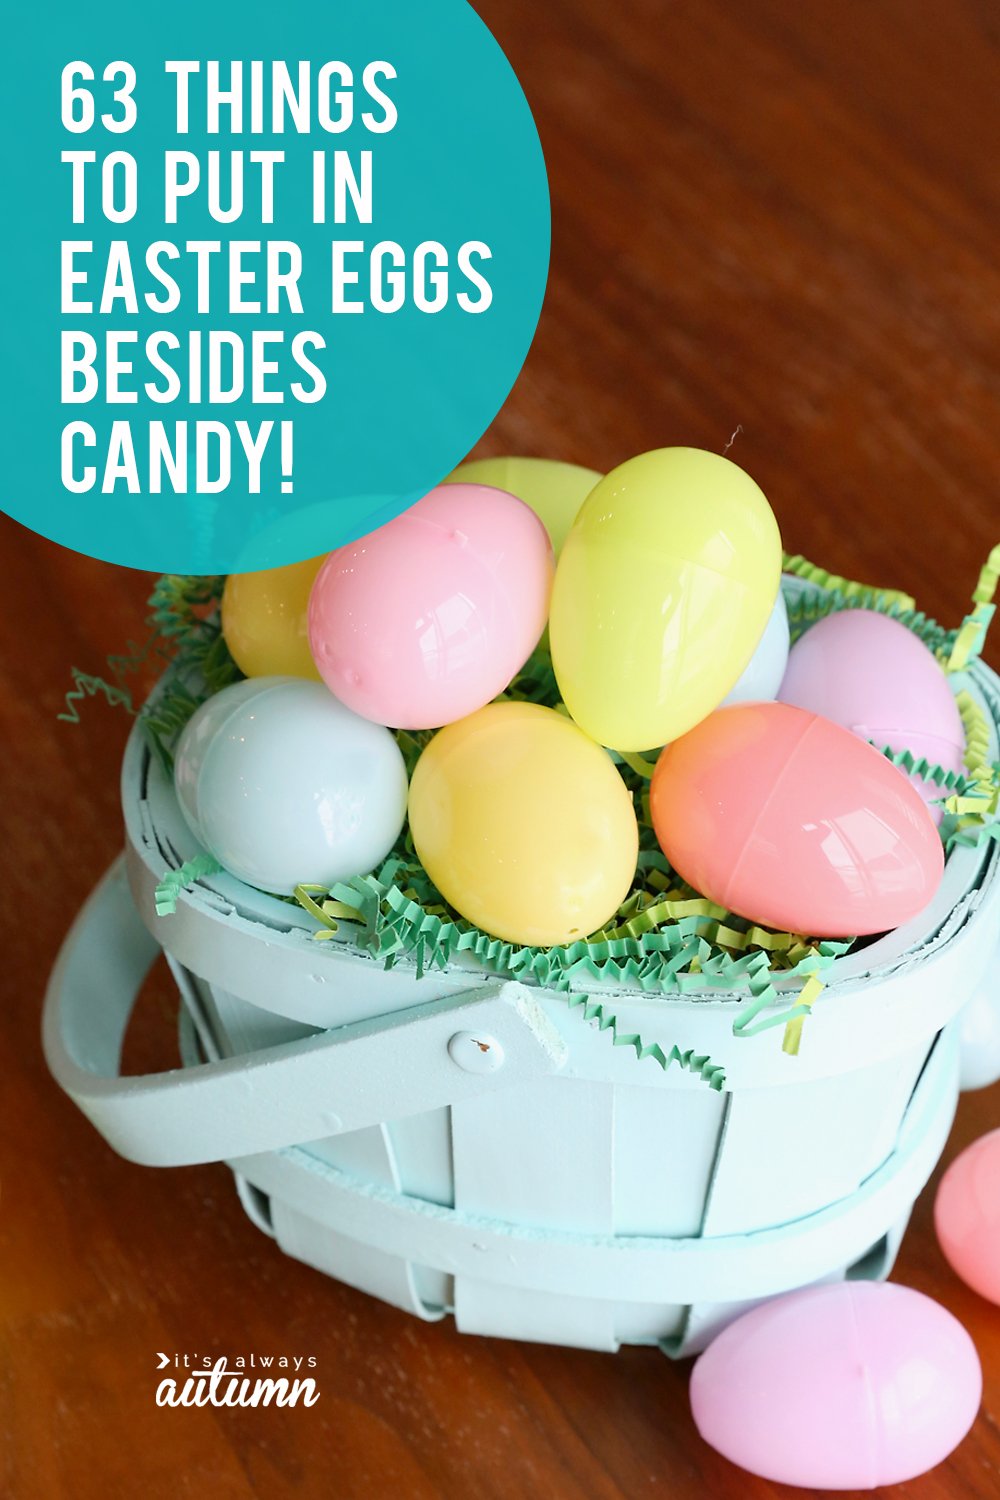 63 Easter egg fillers that aren't candy! Lots of ideas for what to put in Easter eggs besides candy.